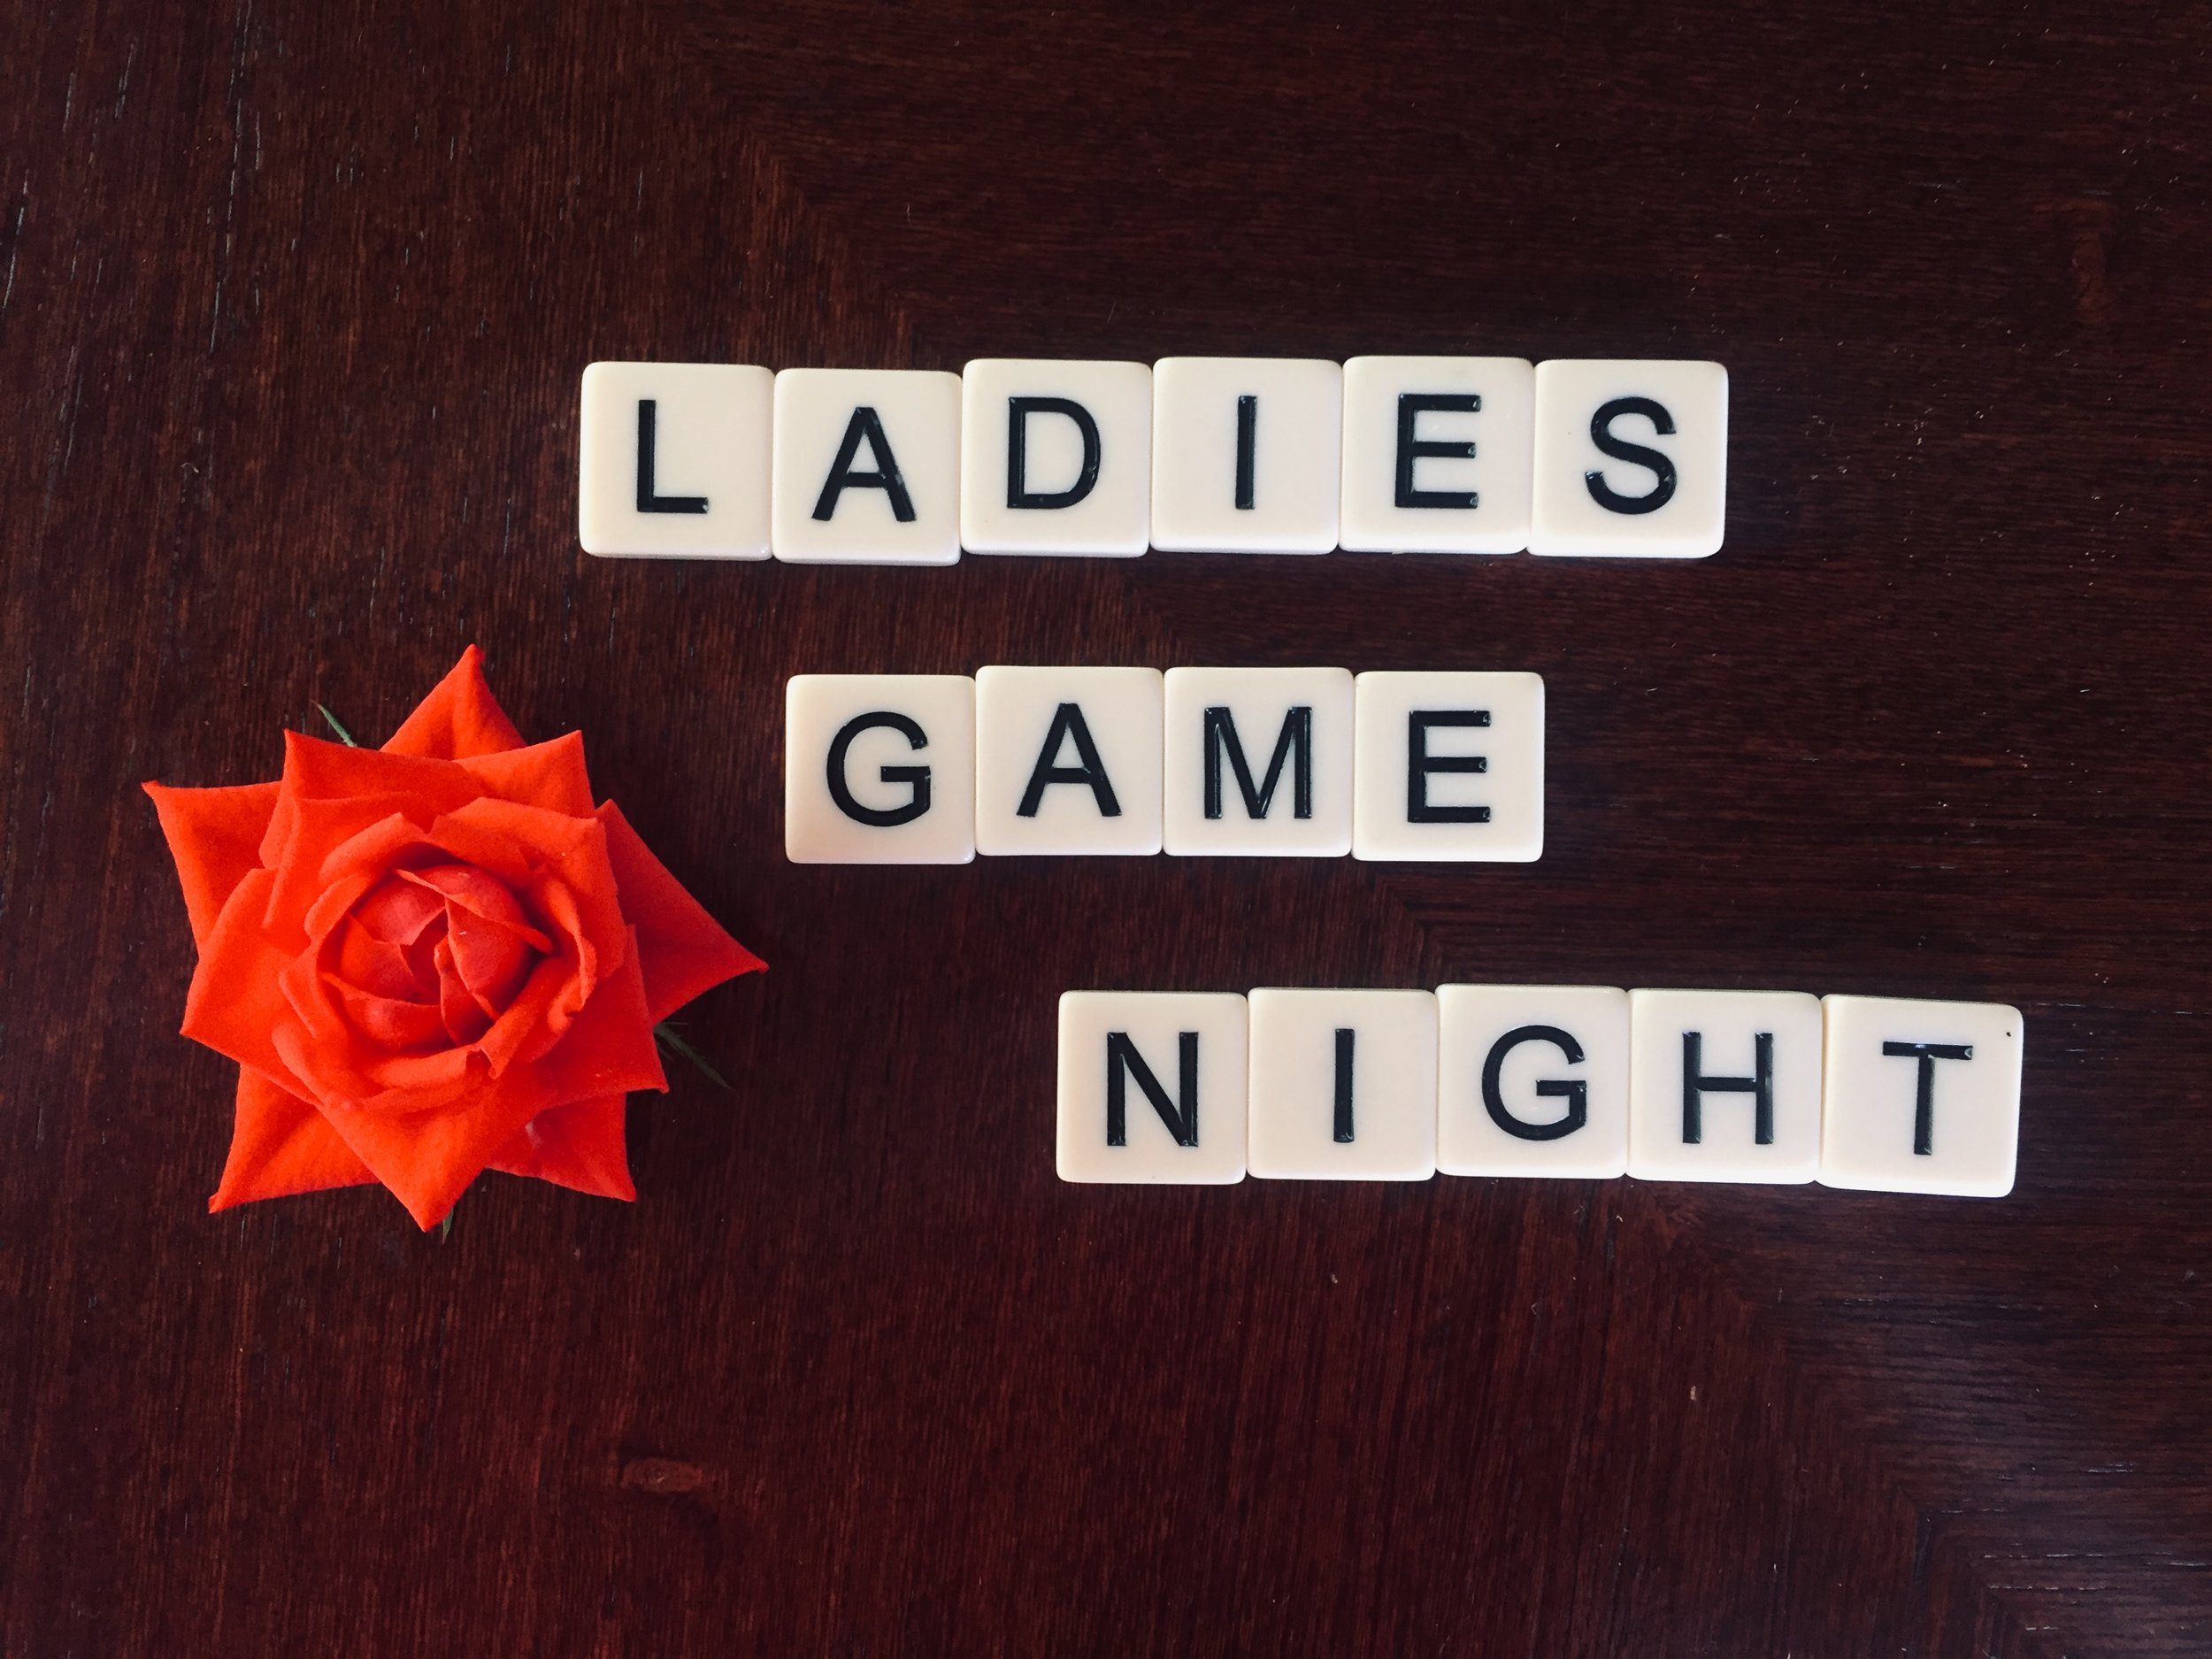 Ladies Game Night.jpg